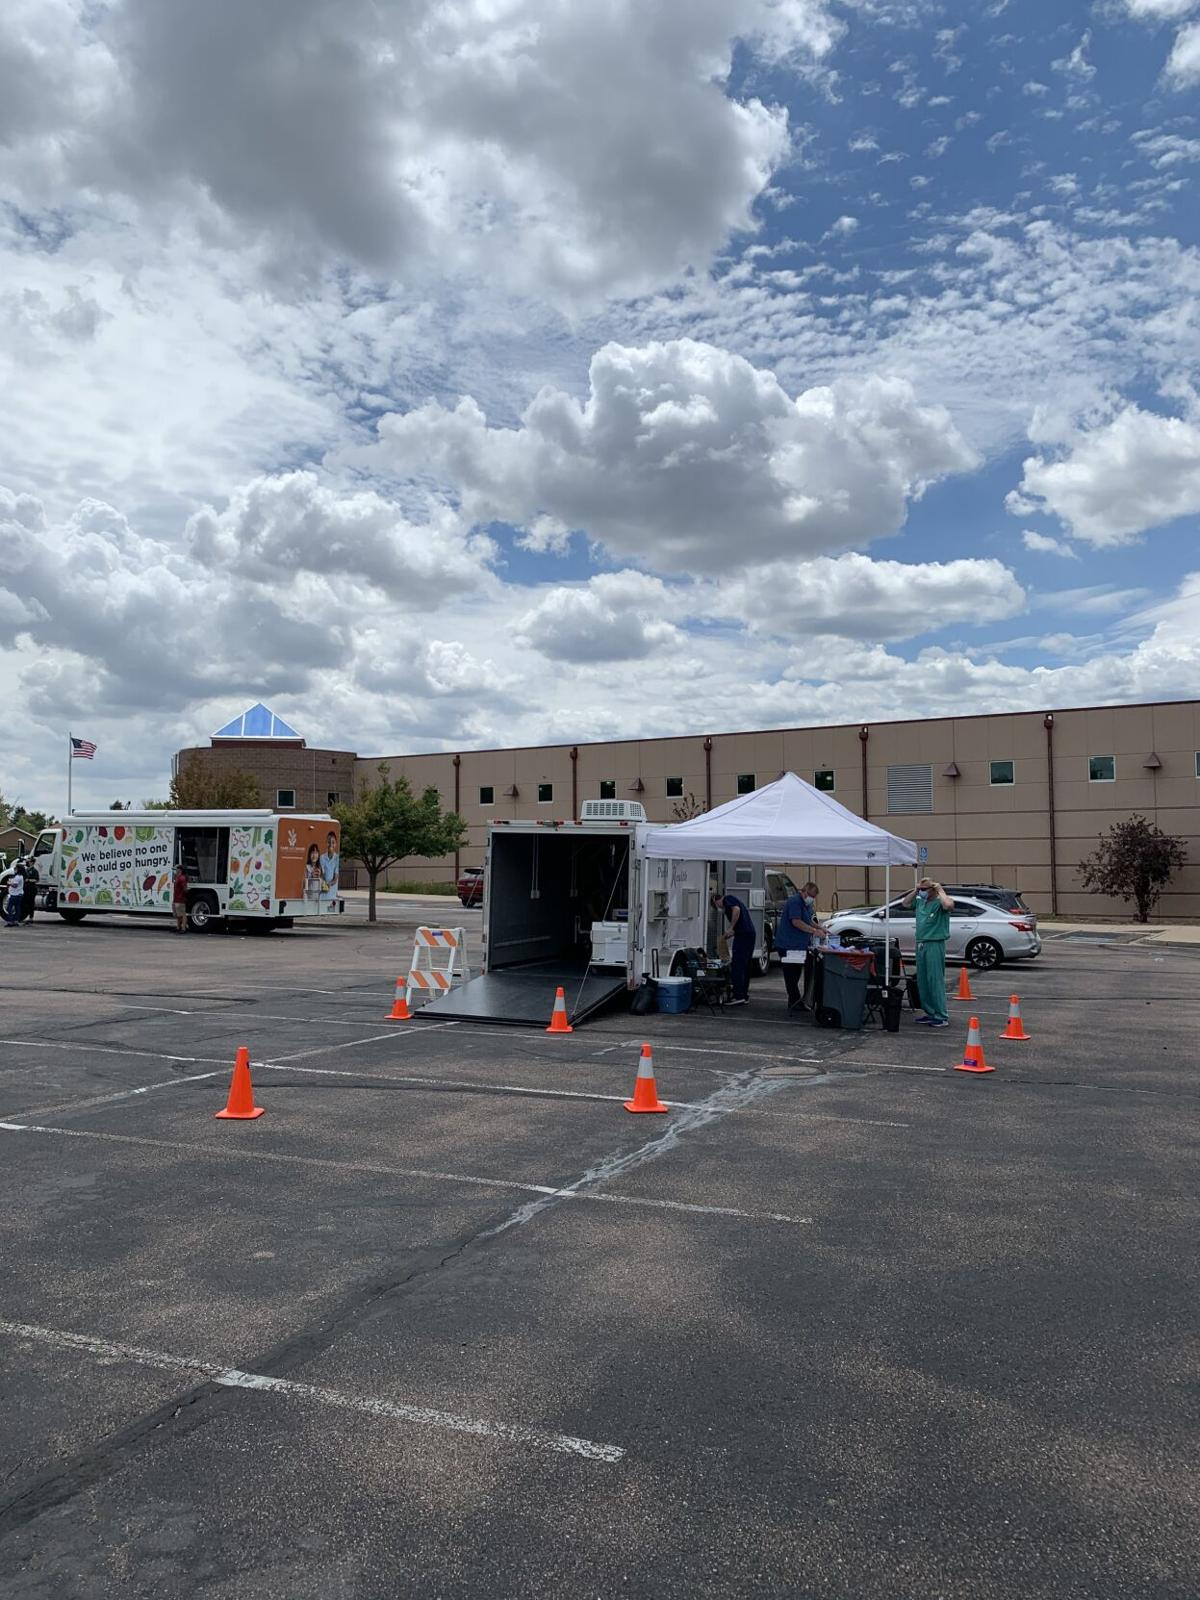 Partnership brings COVID-19 testing to Southeast COS undocumented community